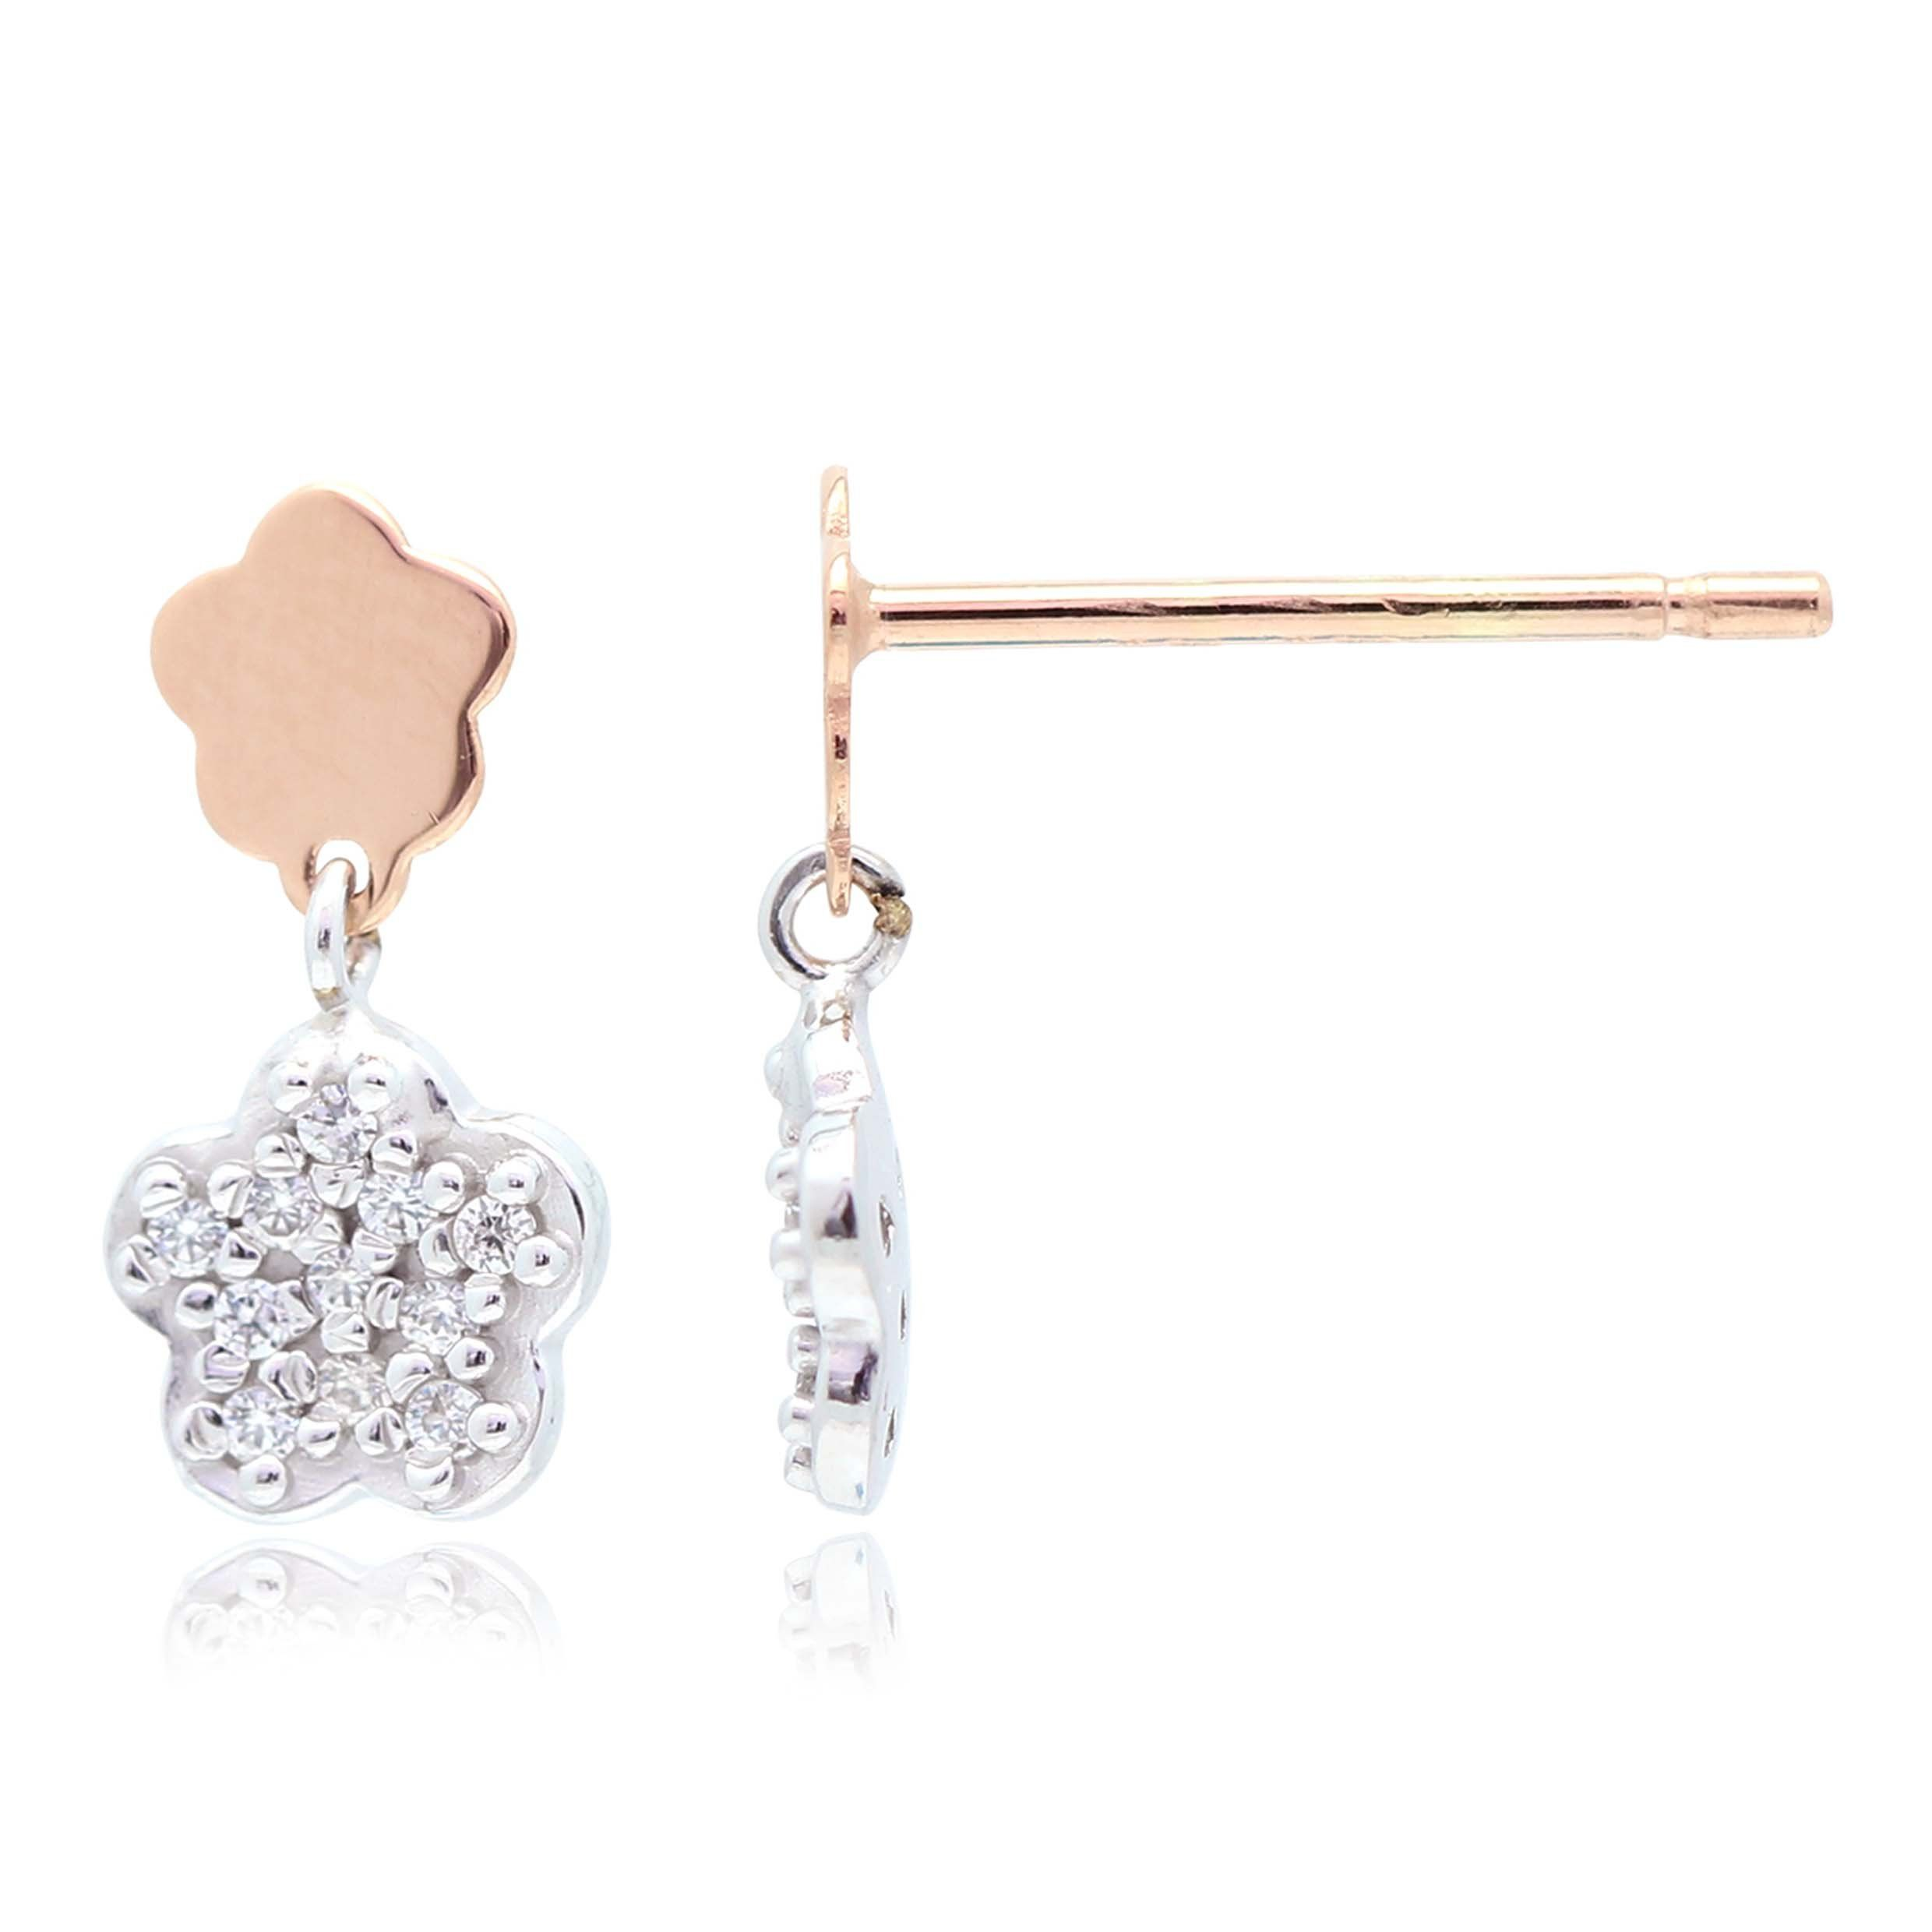 Flower Earrings In 14k White And Rose Gold With Cz Pavé